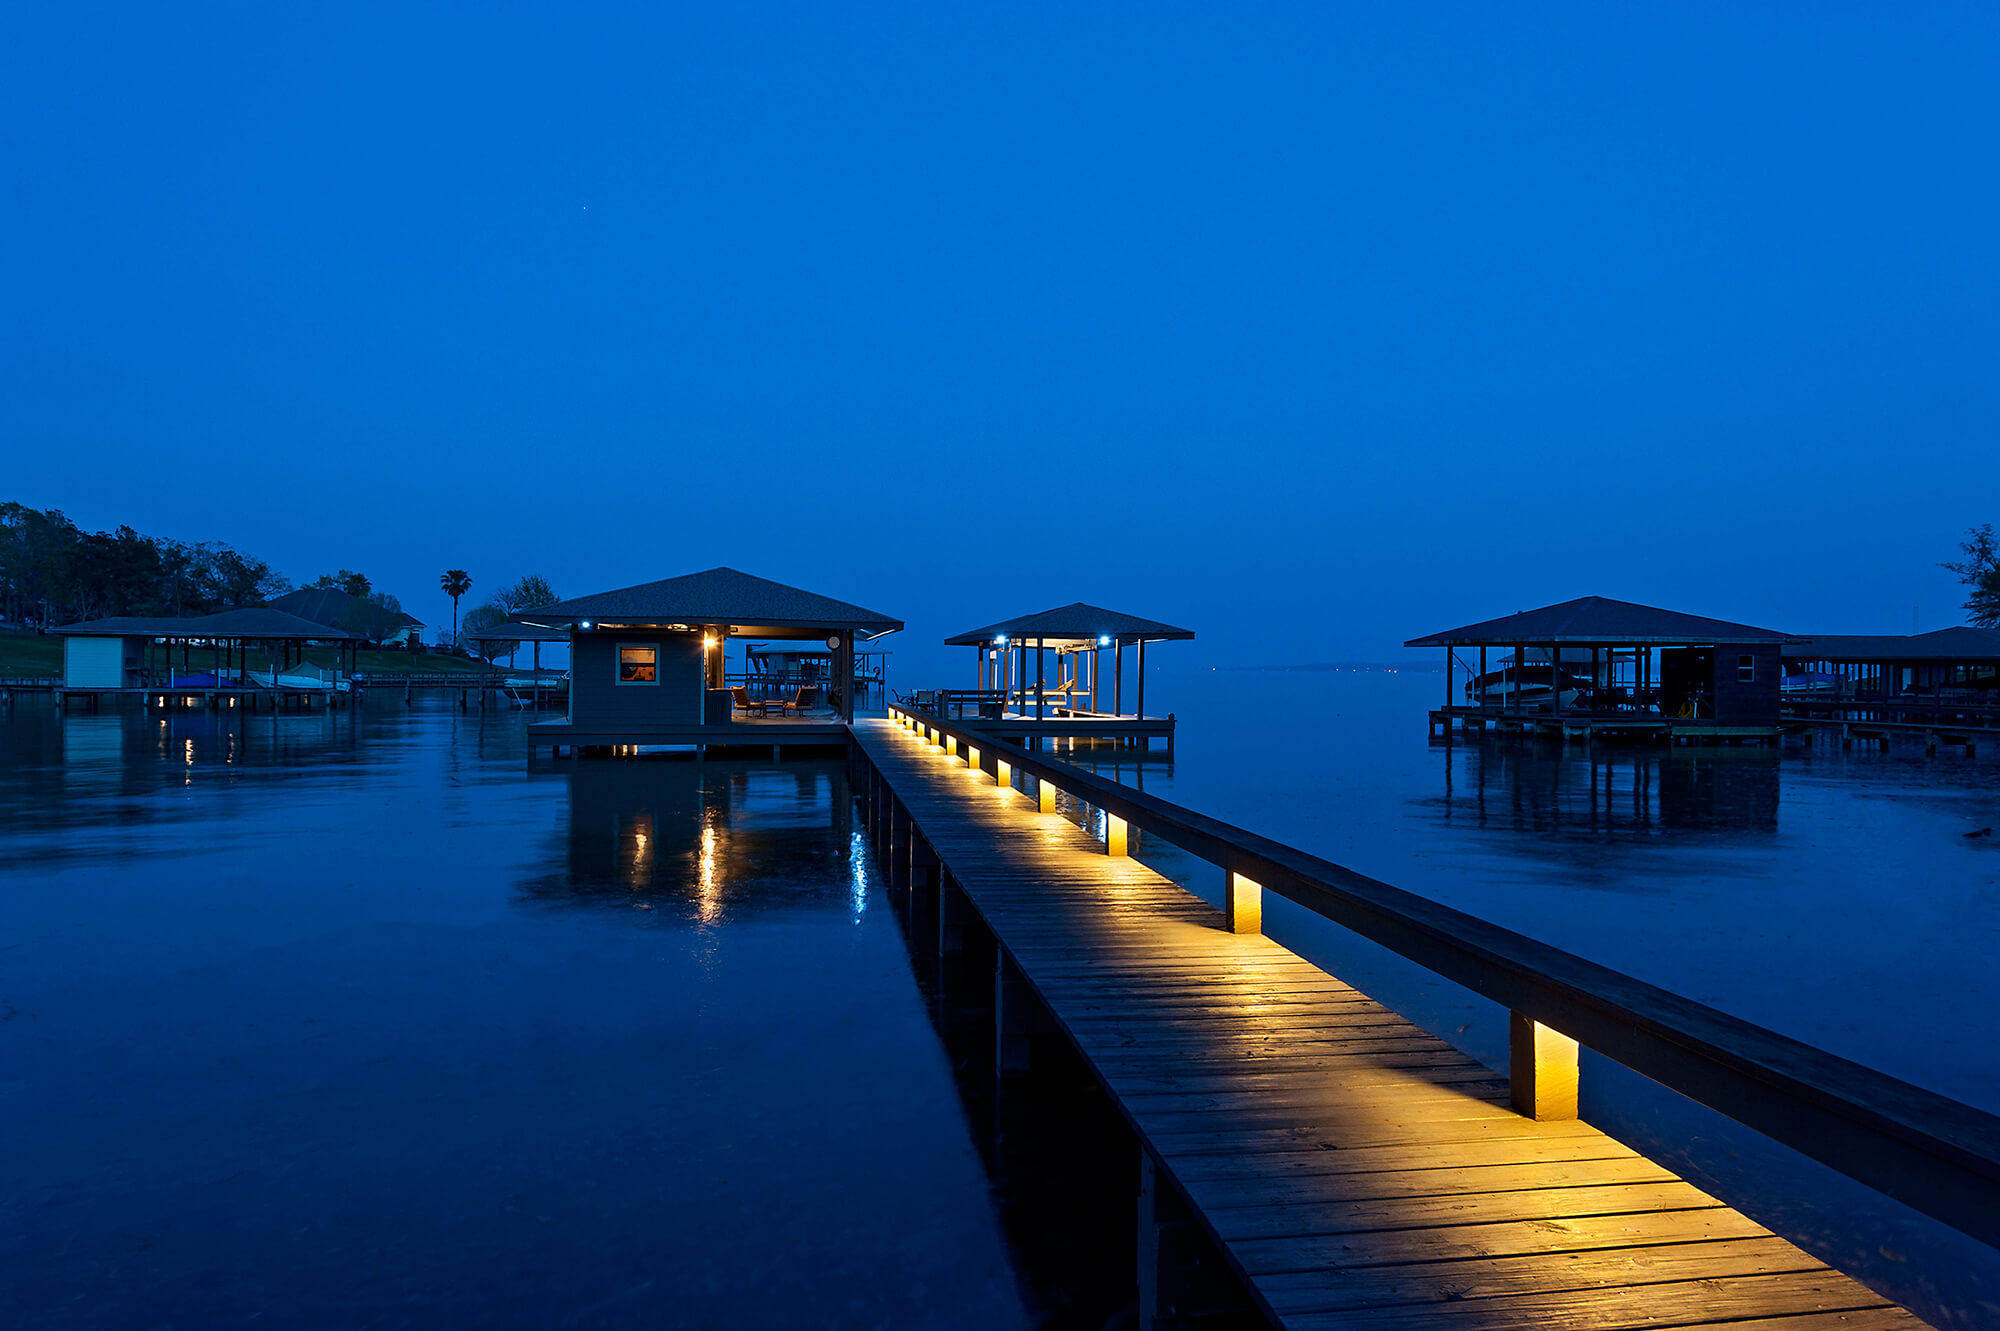 Private Dock at Dusk